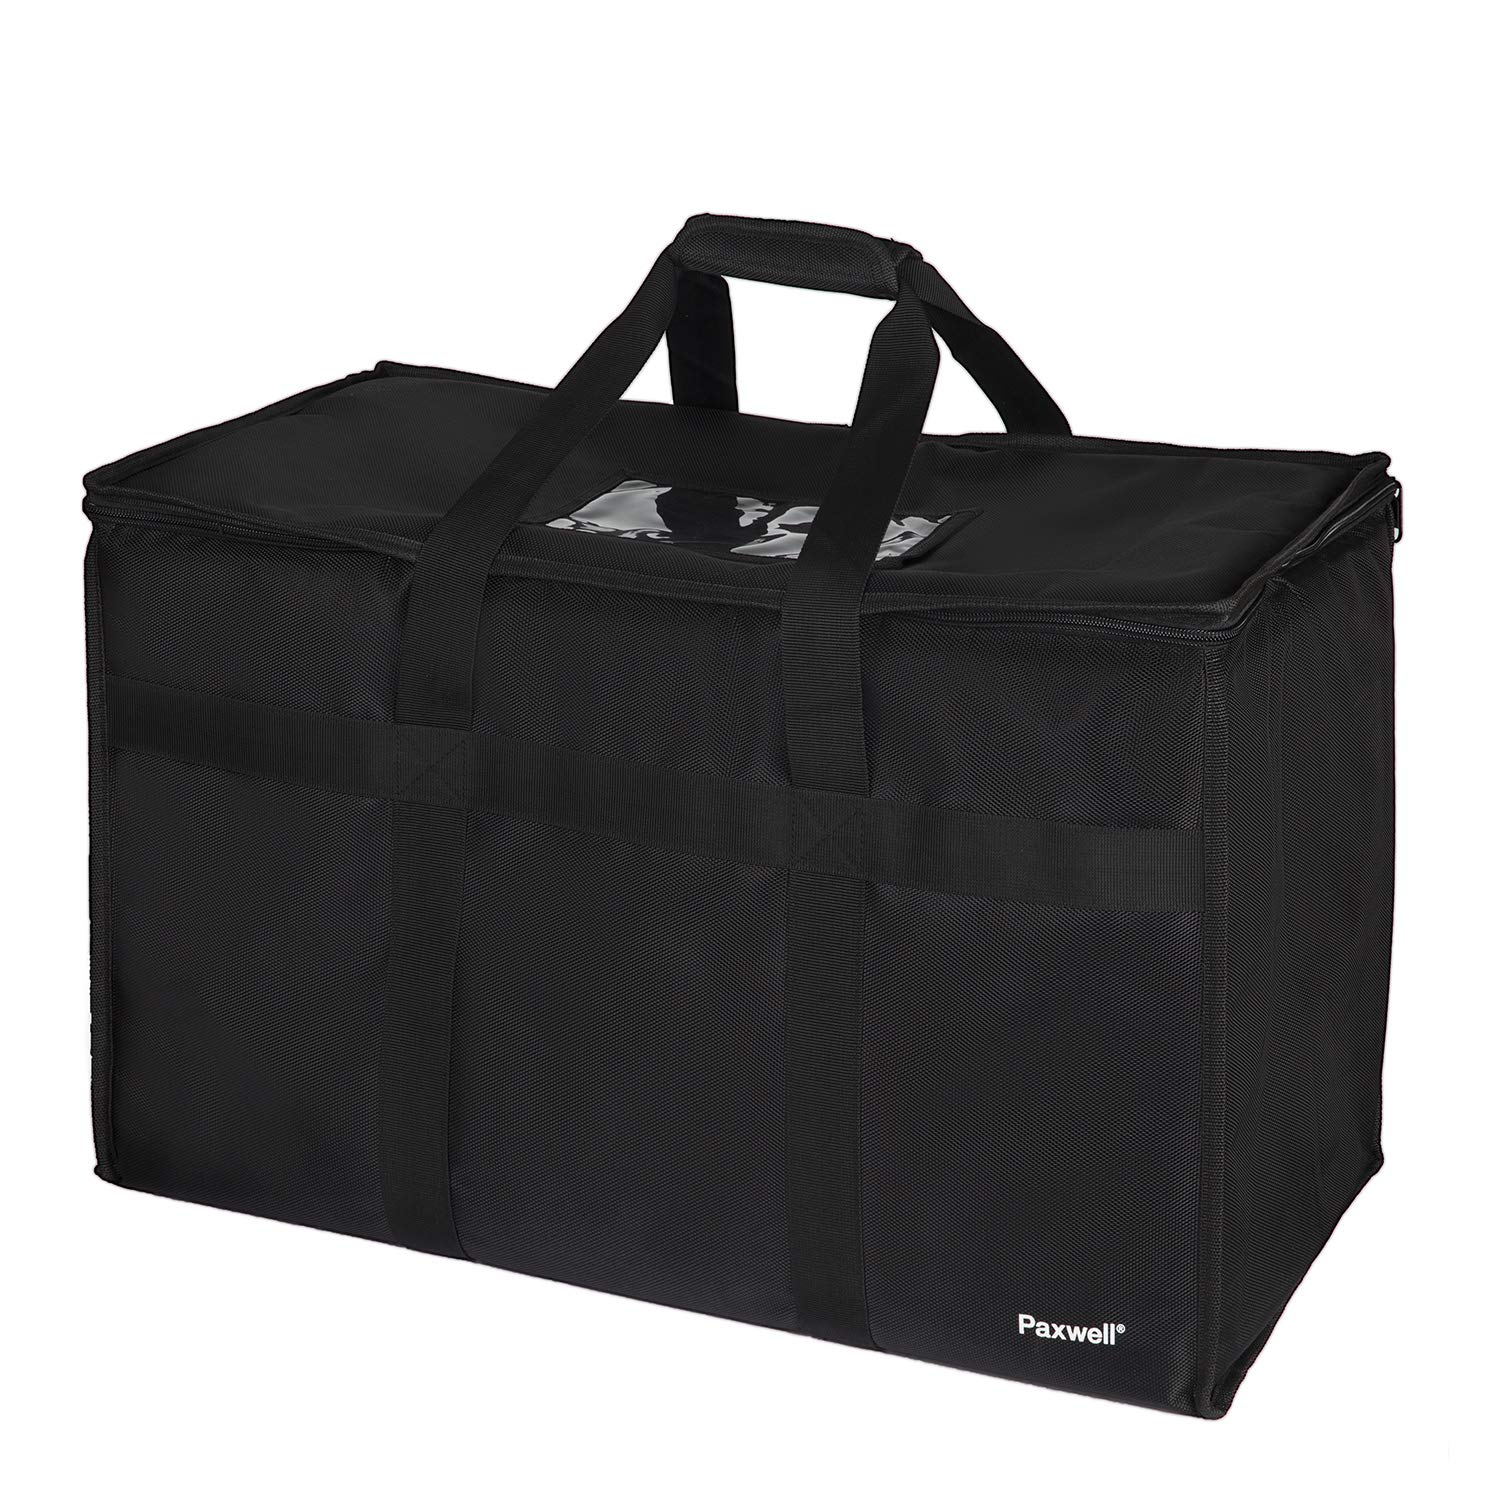 Large Insulated Food Delivery Bag for Uber Eats, Doordash Drivers, Catering and Restaurants with Extra Bottom and Removable Separator to Transport Hot/Cold Items, 23'' x 15'' x 12'' Inside